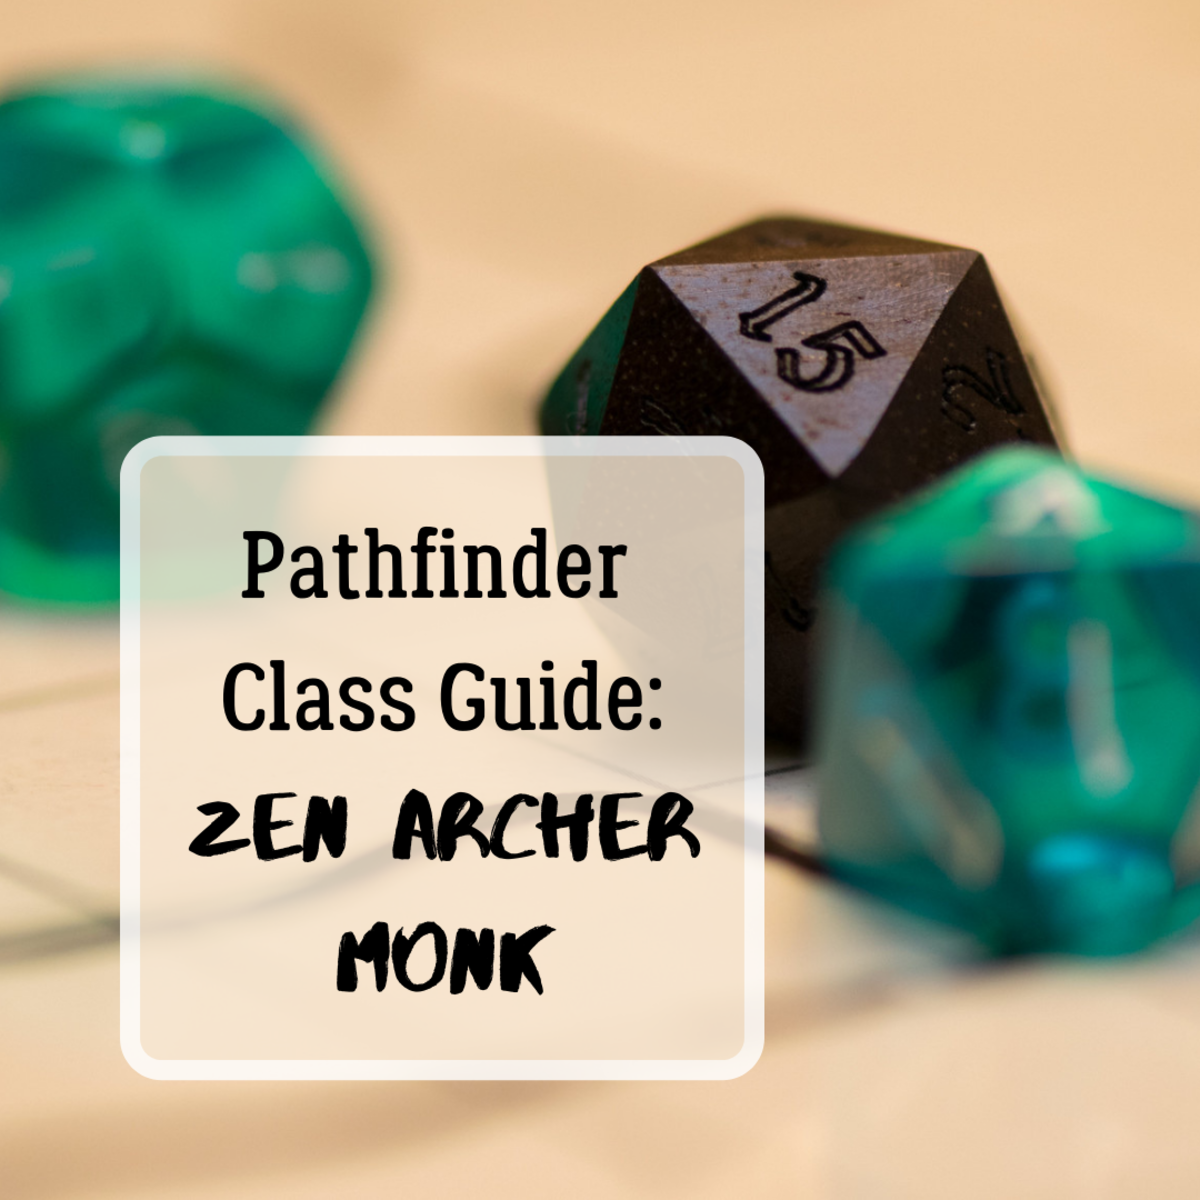 Learn about the abilities of this Pathfinder class, and examine a sample build.